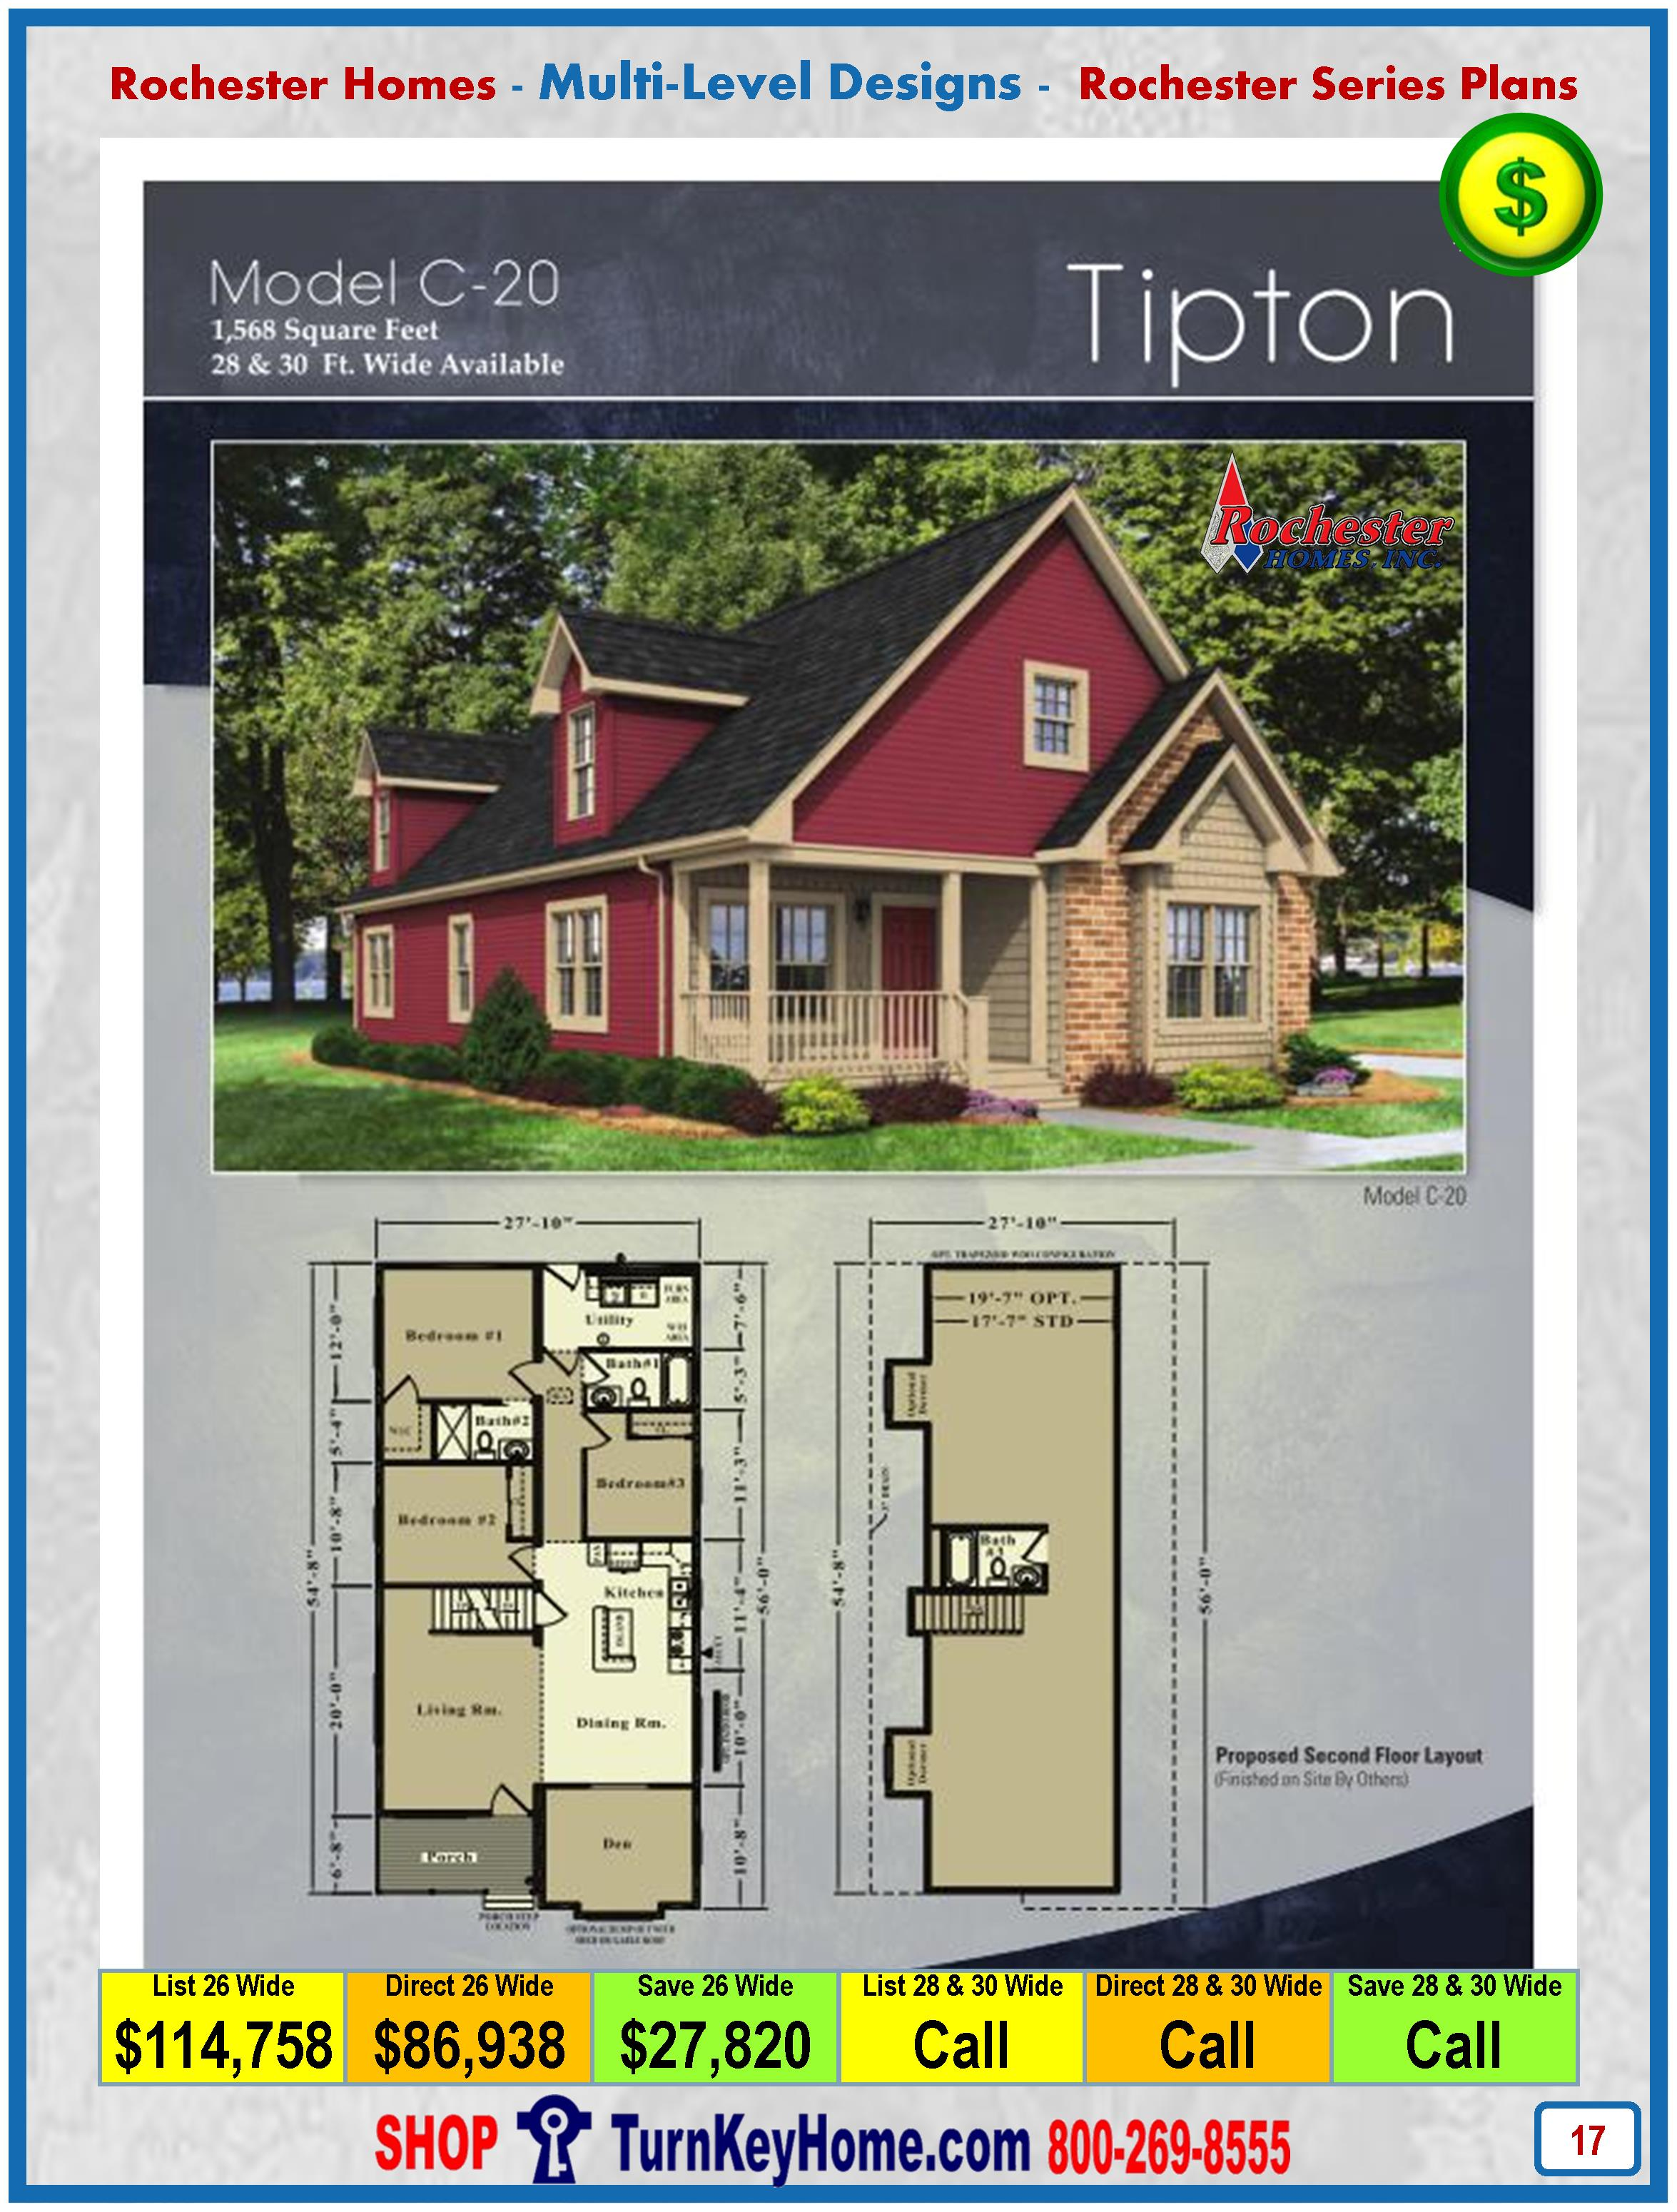 tipton rochester modular home cape cod multi level plan price home rochester homes cape cod tipton c20